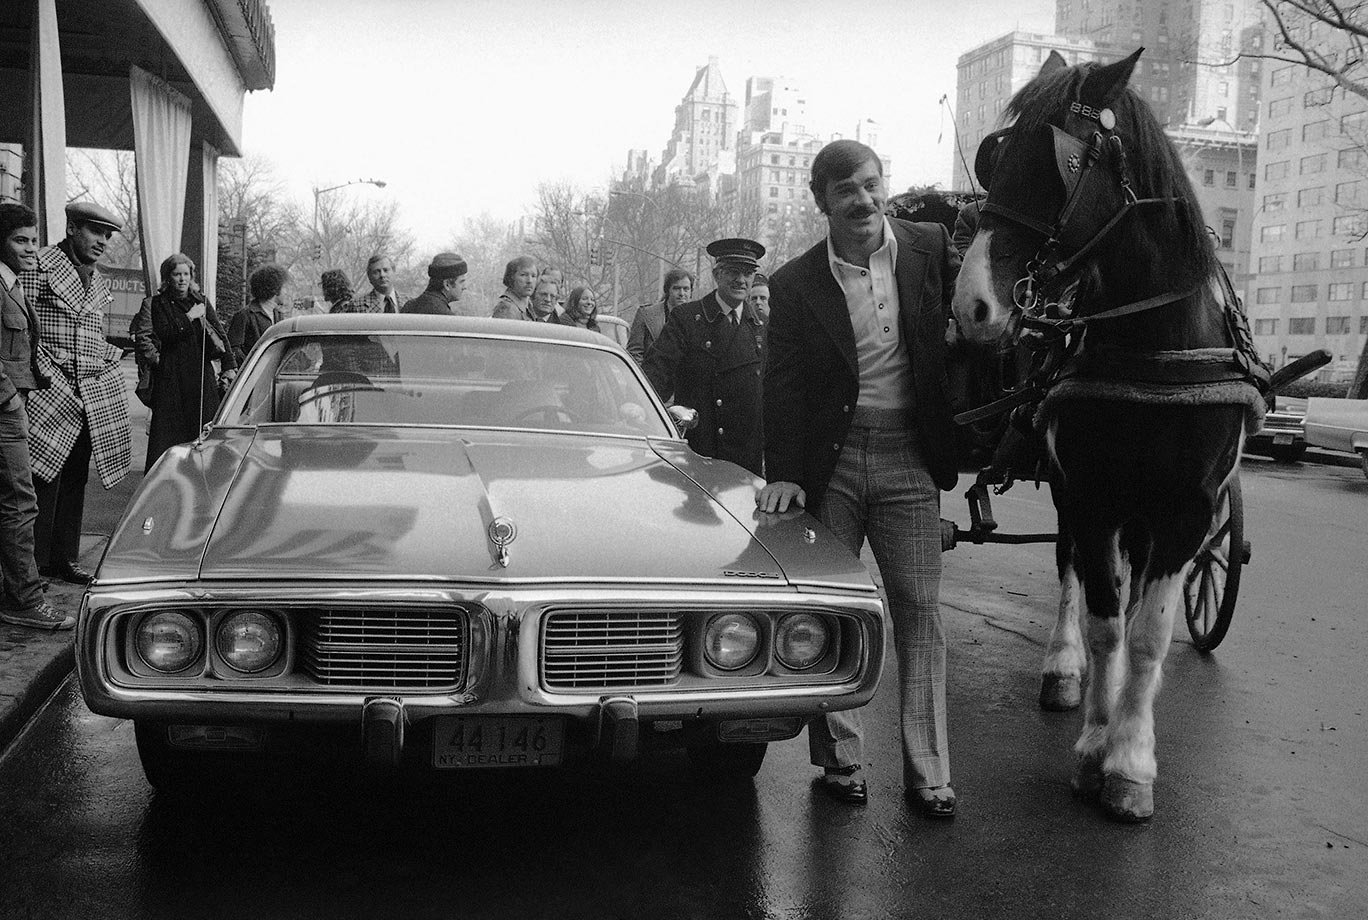 Larry Csonka, Miami Dolphins runner and Super Bowl hero, stands in a New York City street next to the car he received.